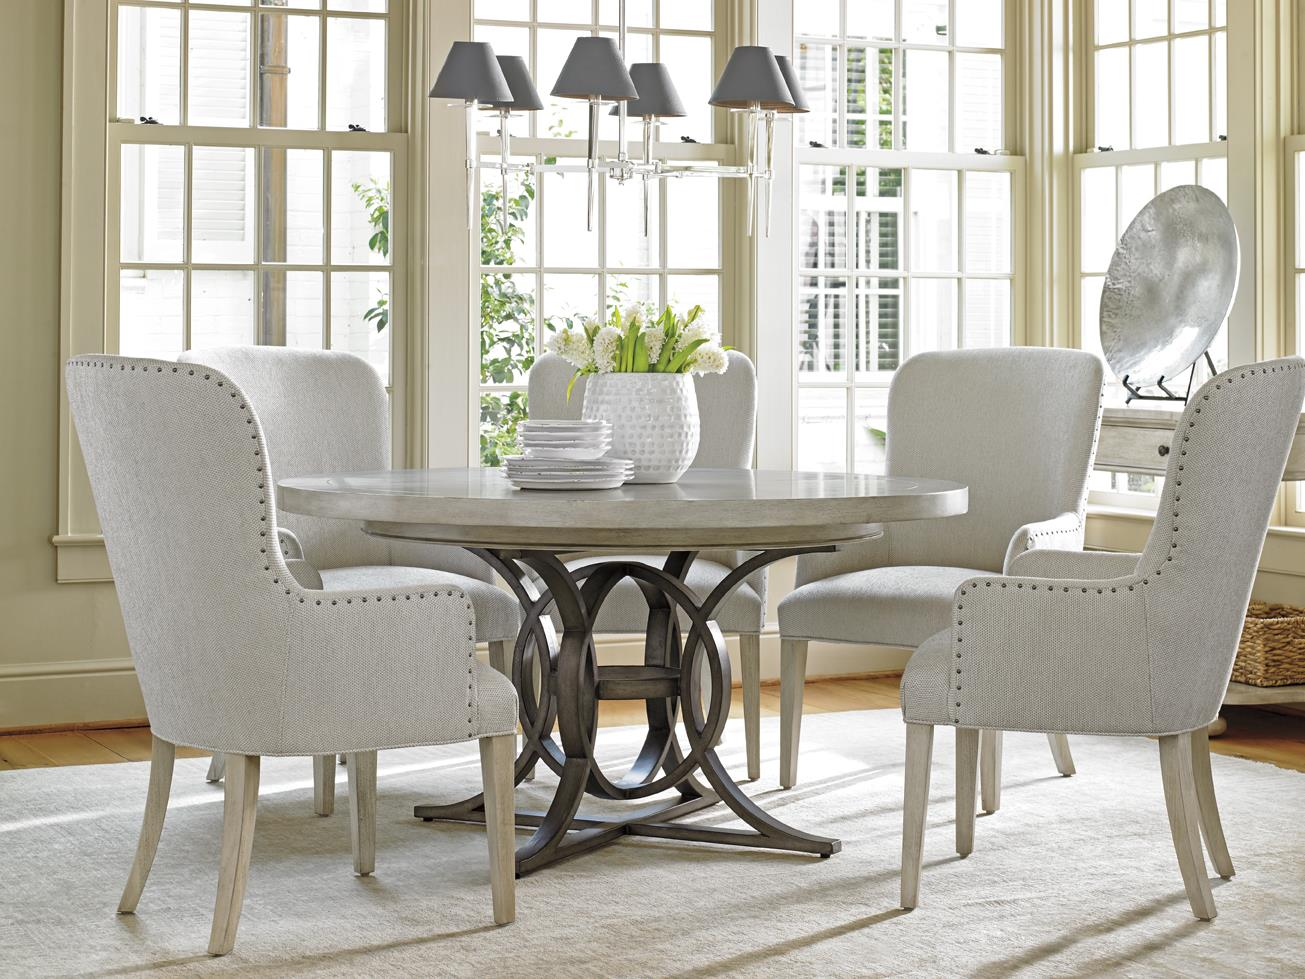 Lexington Oyster Bay Calerton Round Dining Table With